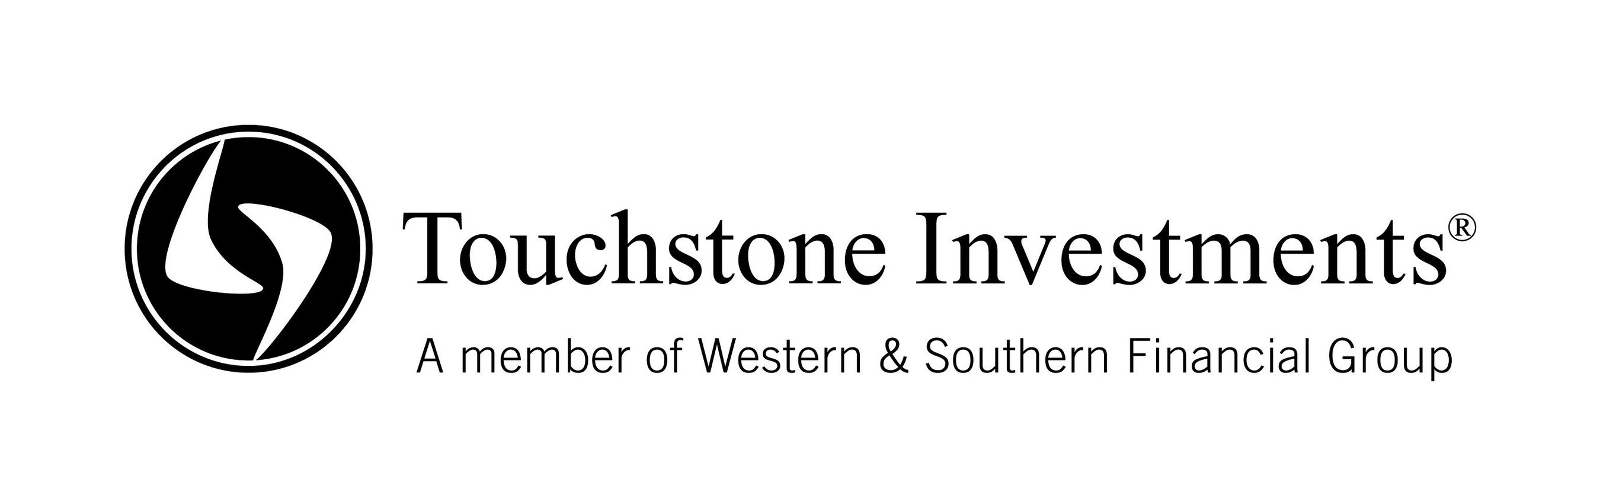 Touchstone Investments Launches International Growth Fund